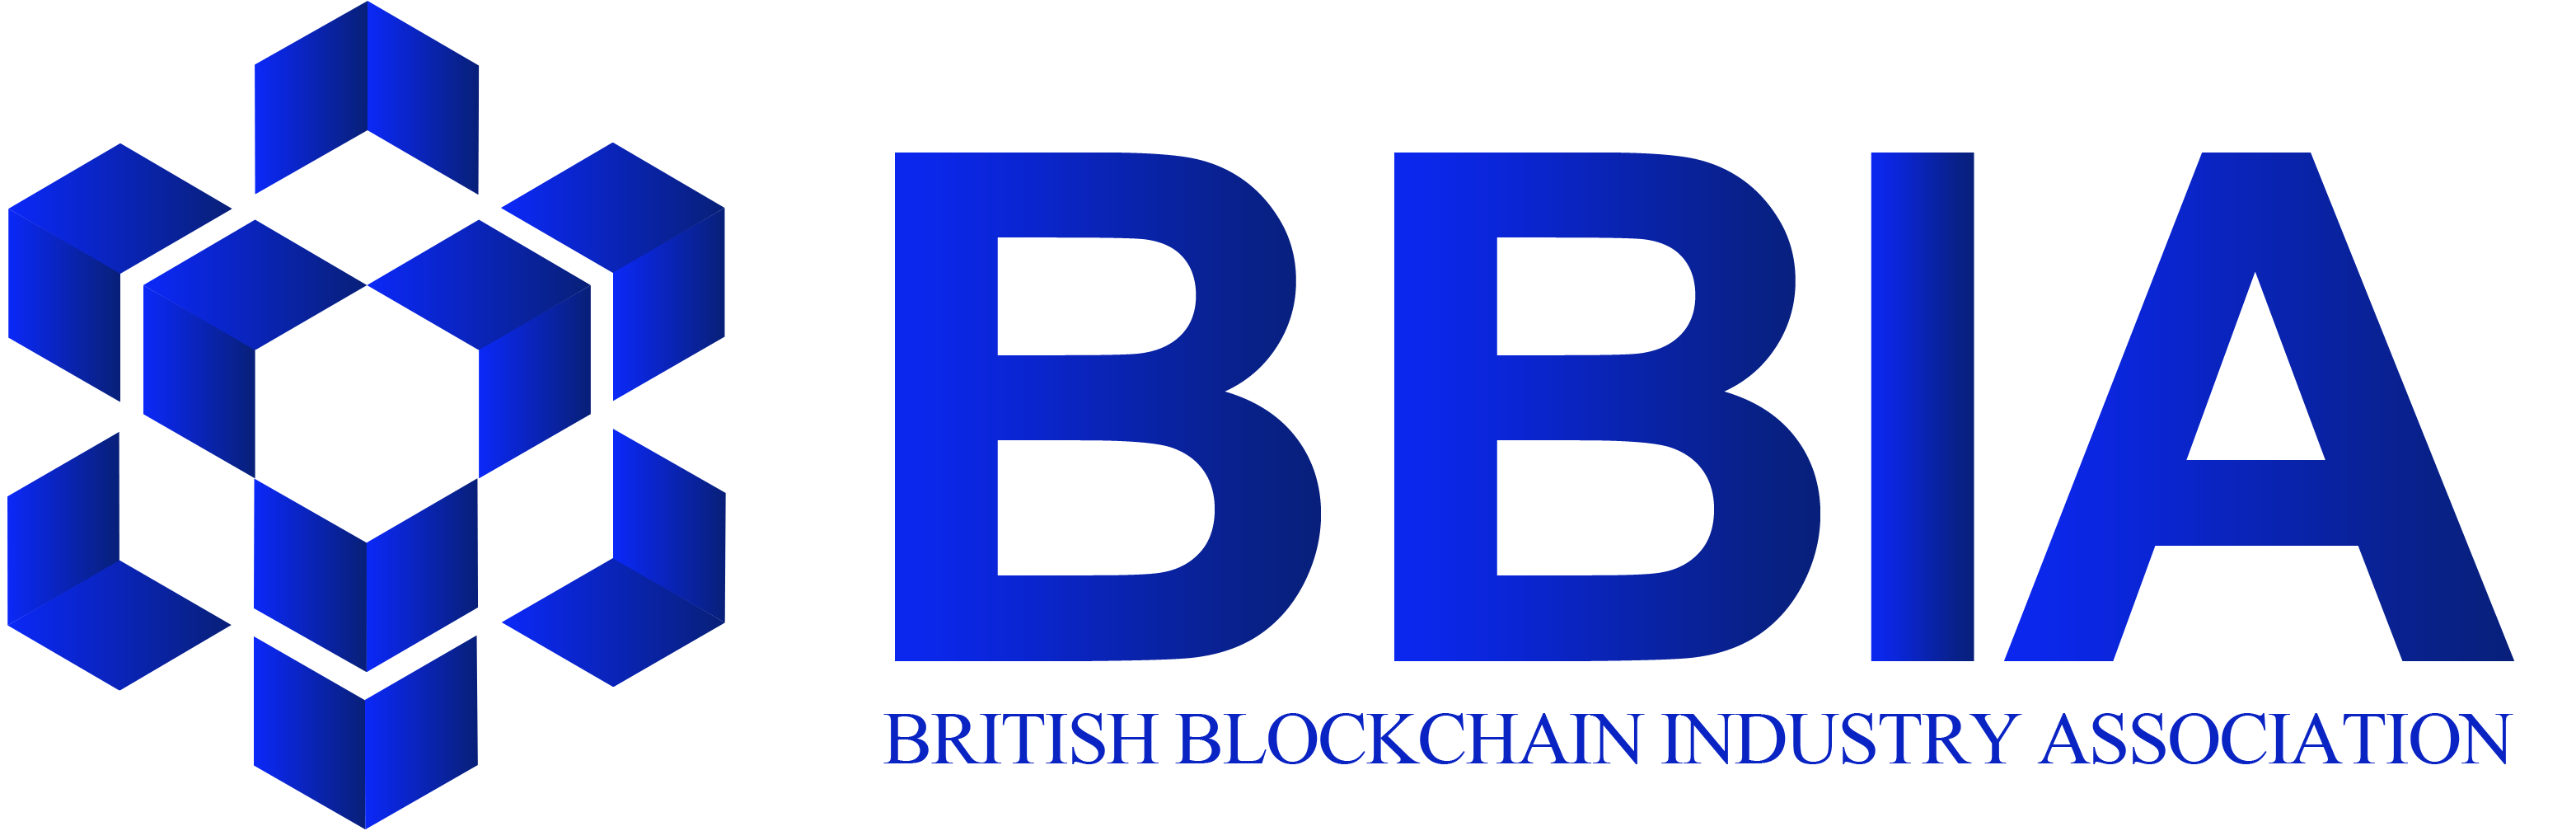 British Blockchain Industry Association